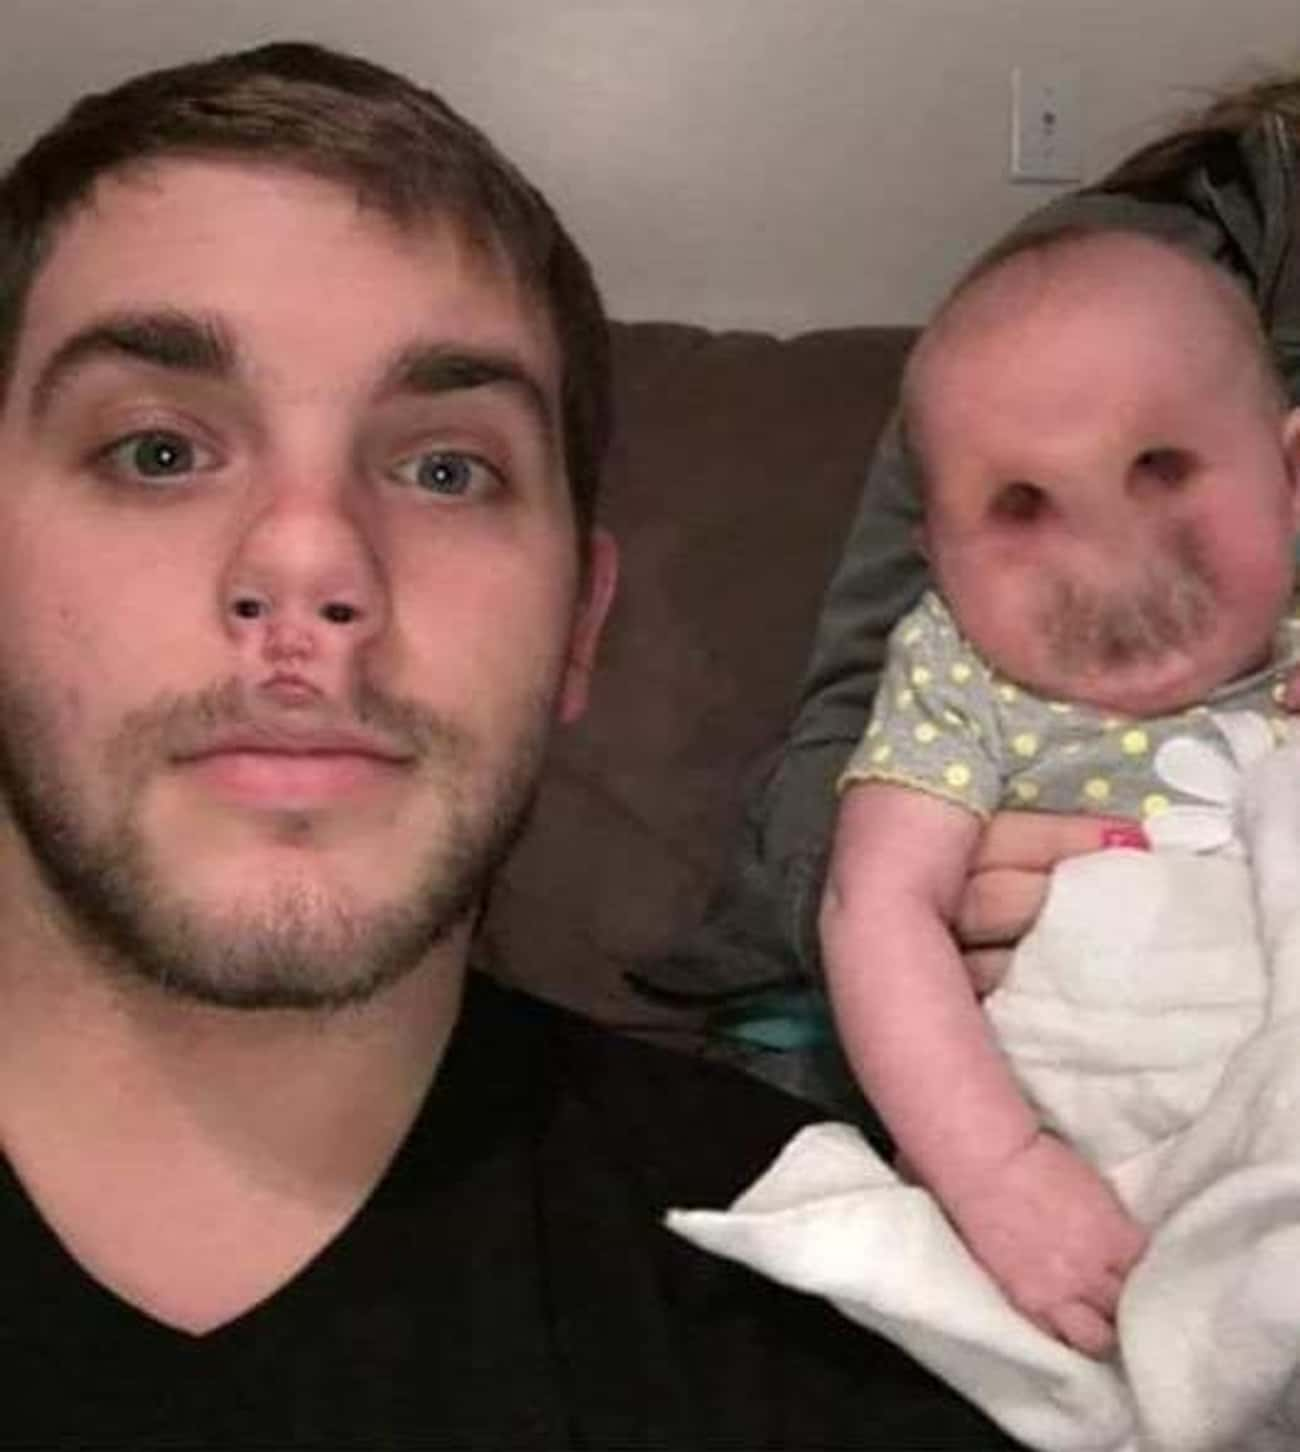 By A Nose is listed (or ranked) 4 on the list 25 Horrifying Face Swaps That Will Fuel Your Nightmares